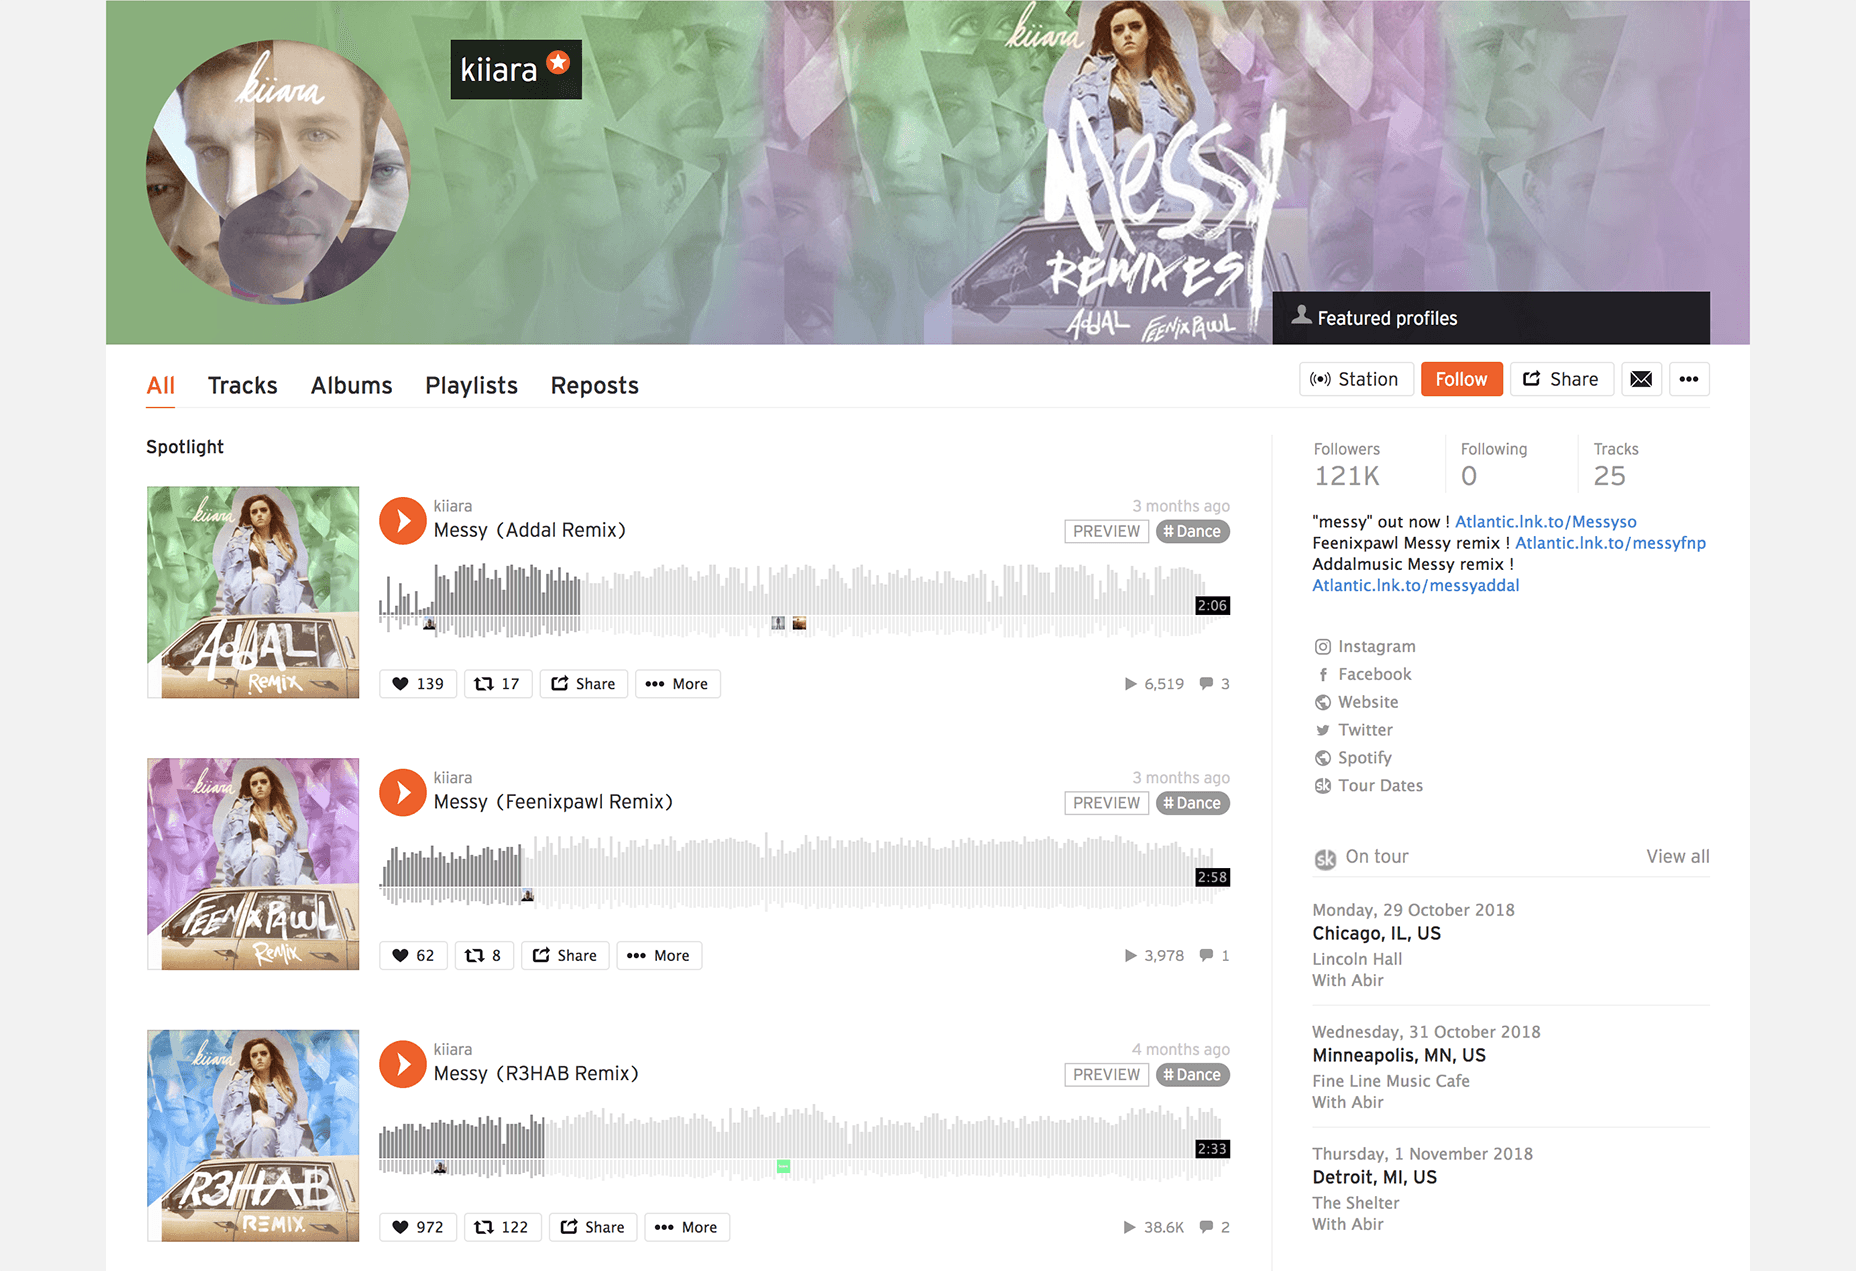 Songkick featured on SoundCloud profile